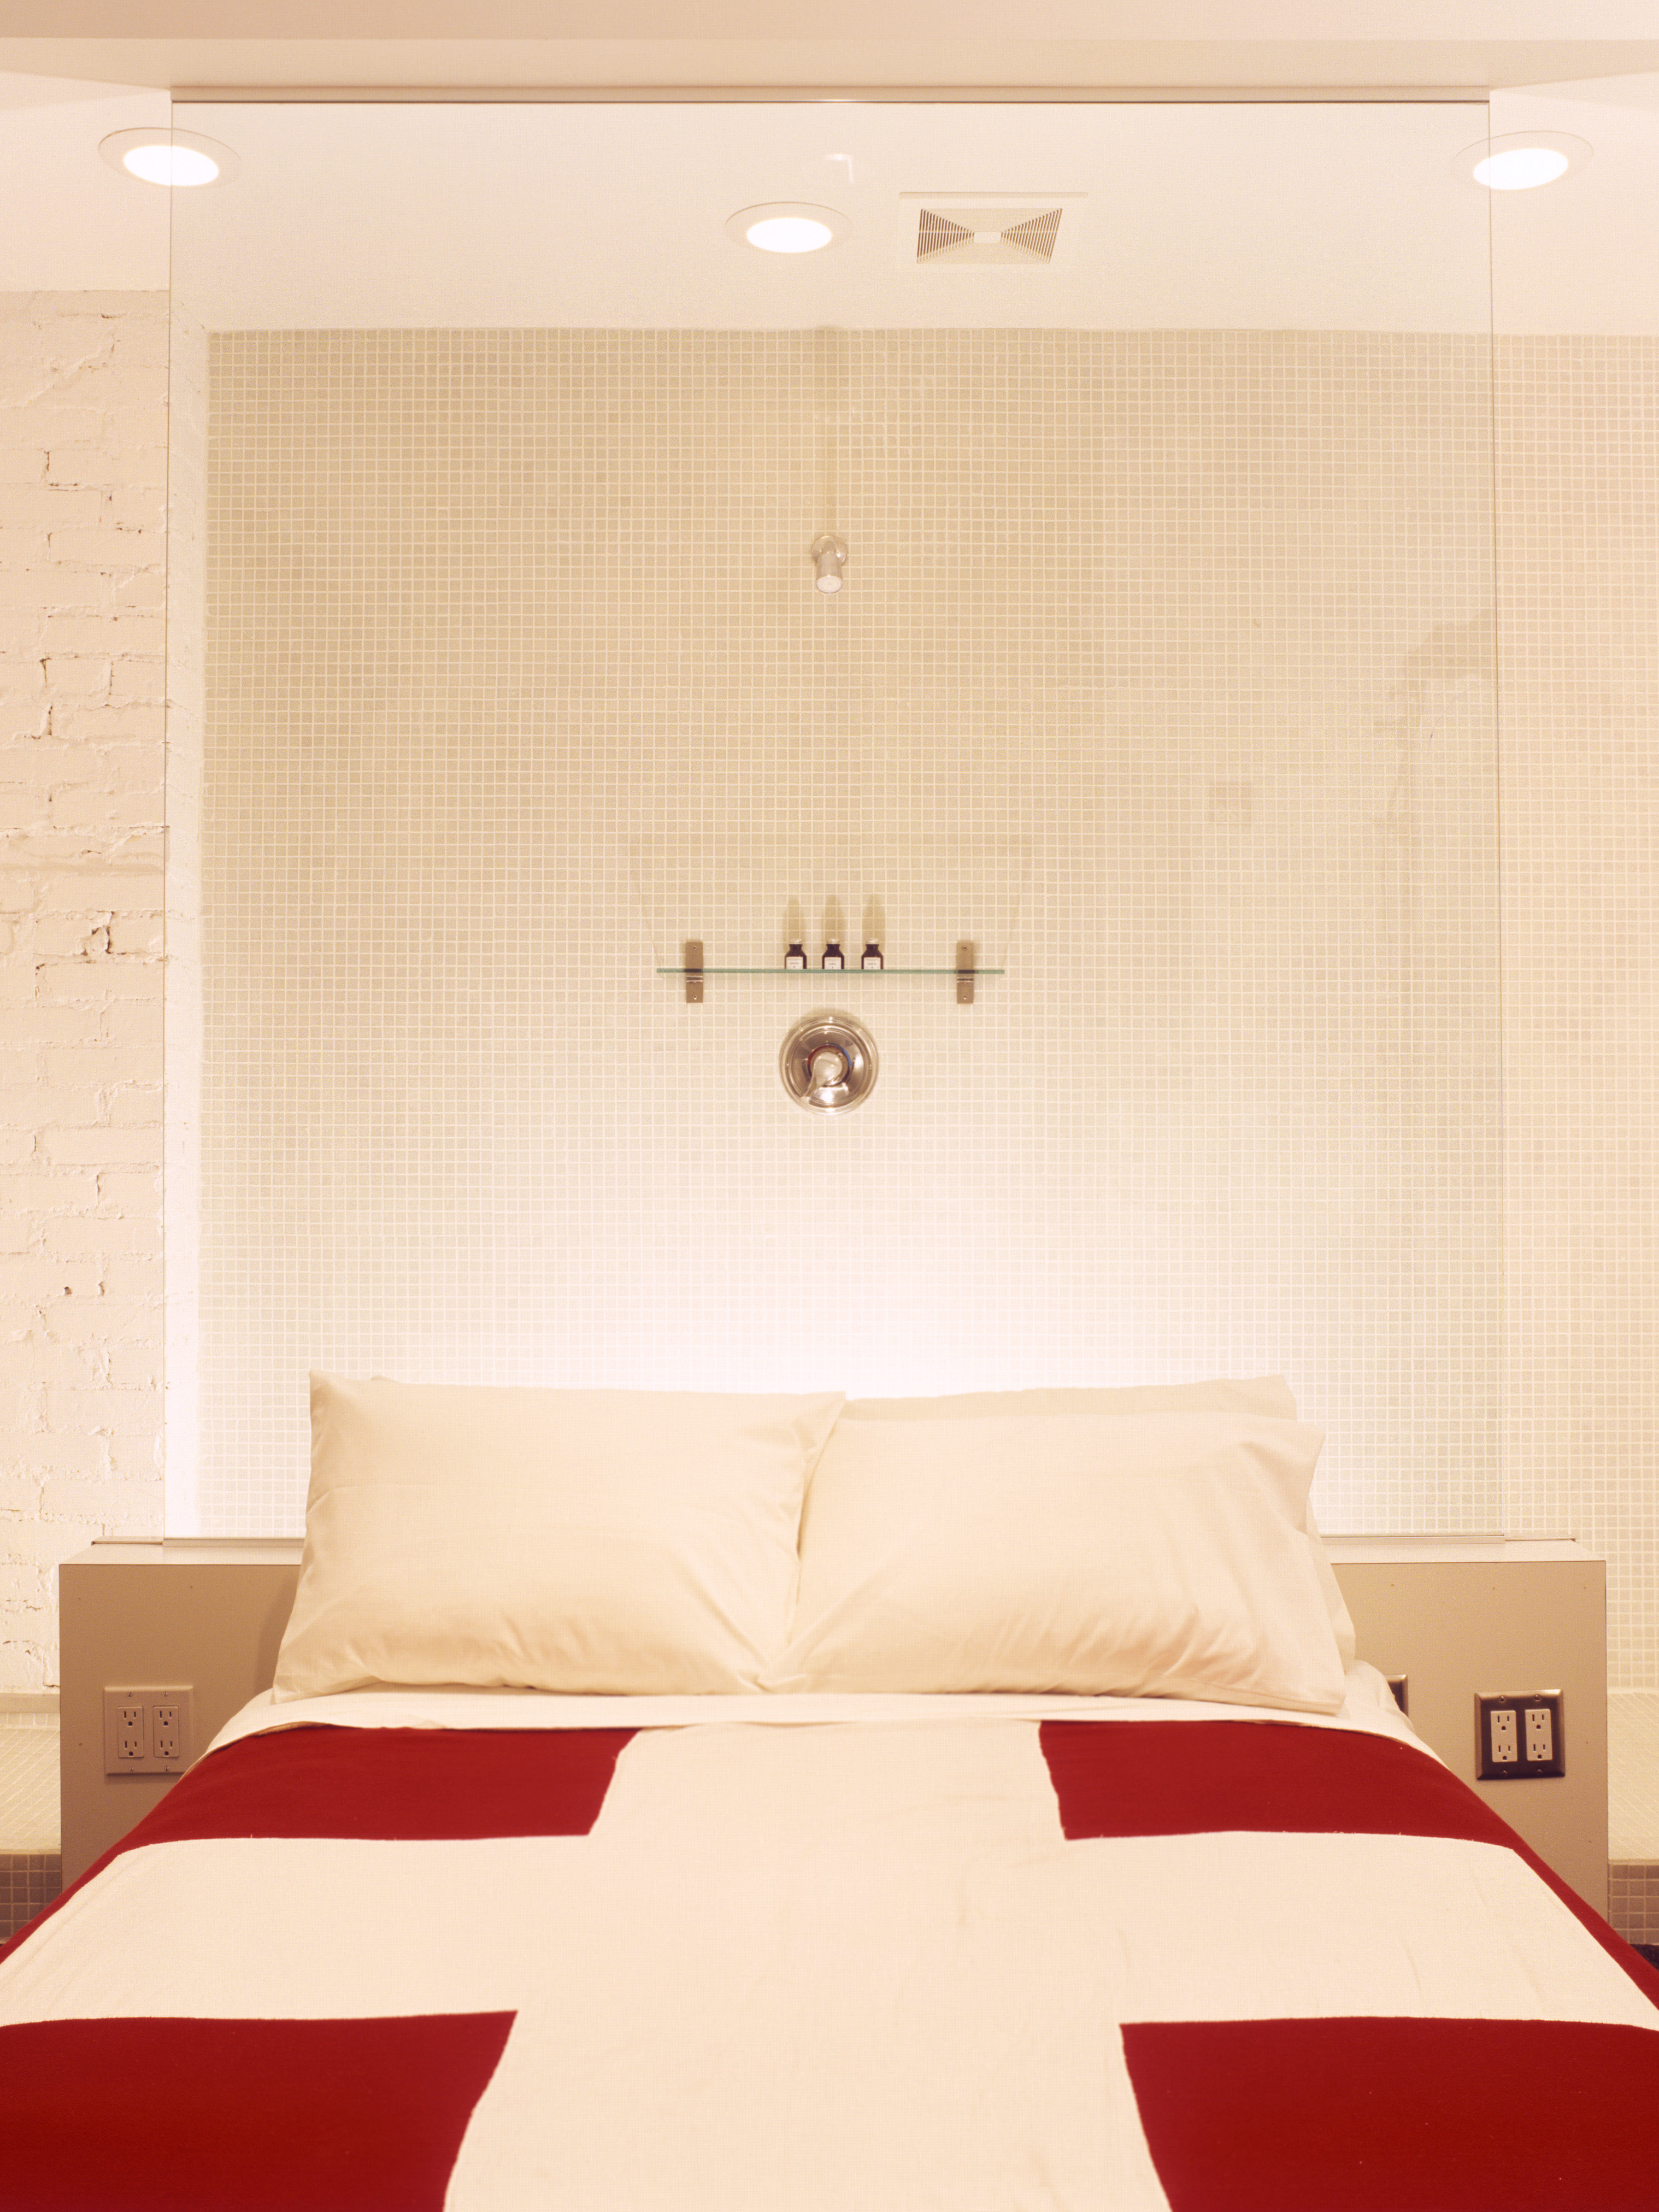 Bedroom Modern sofa pillow white red bed sheet flooring Suite textile bedclothes colored